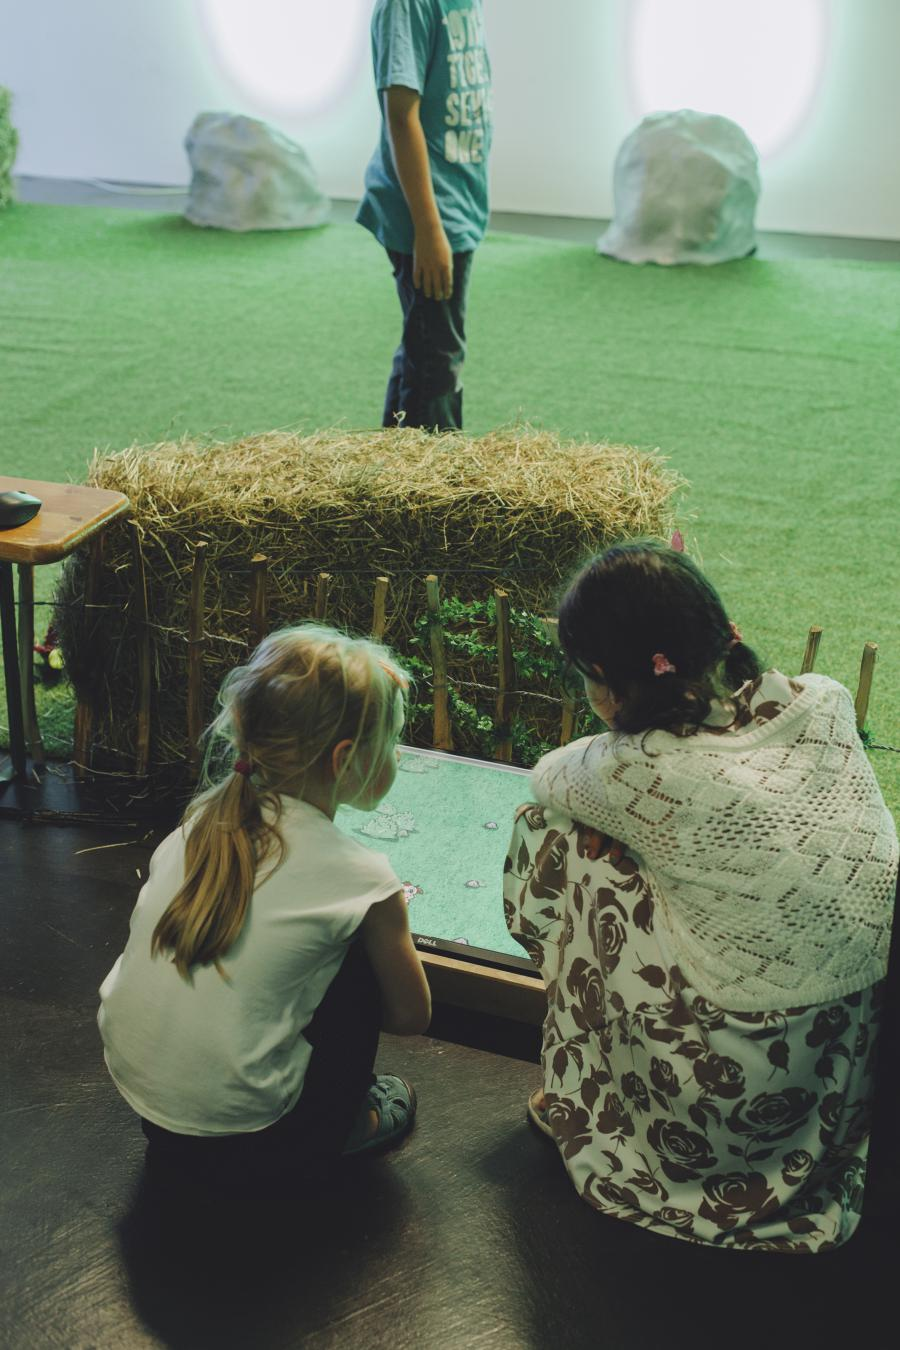 Two children sit kneeling in front of a screen